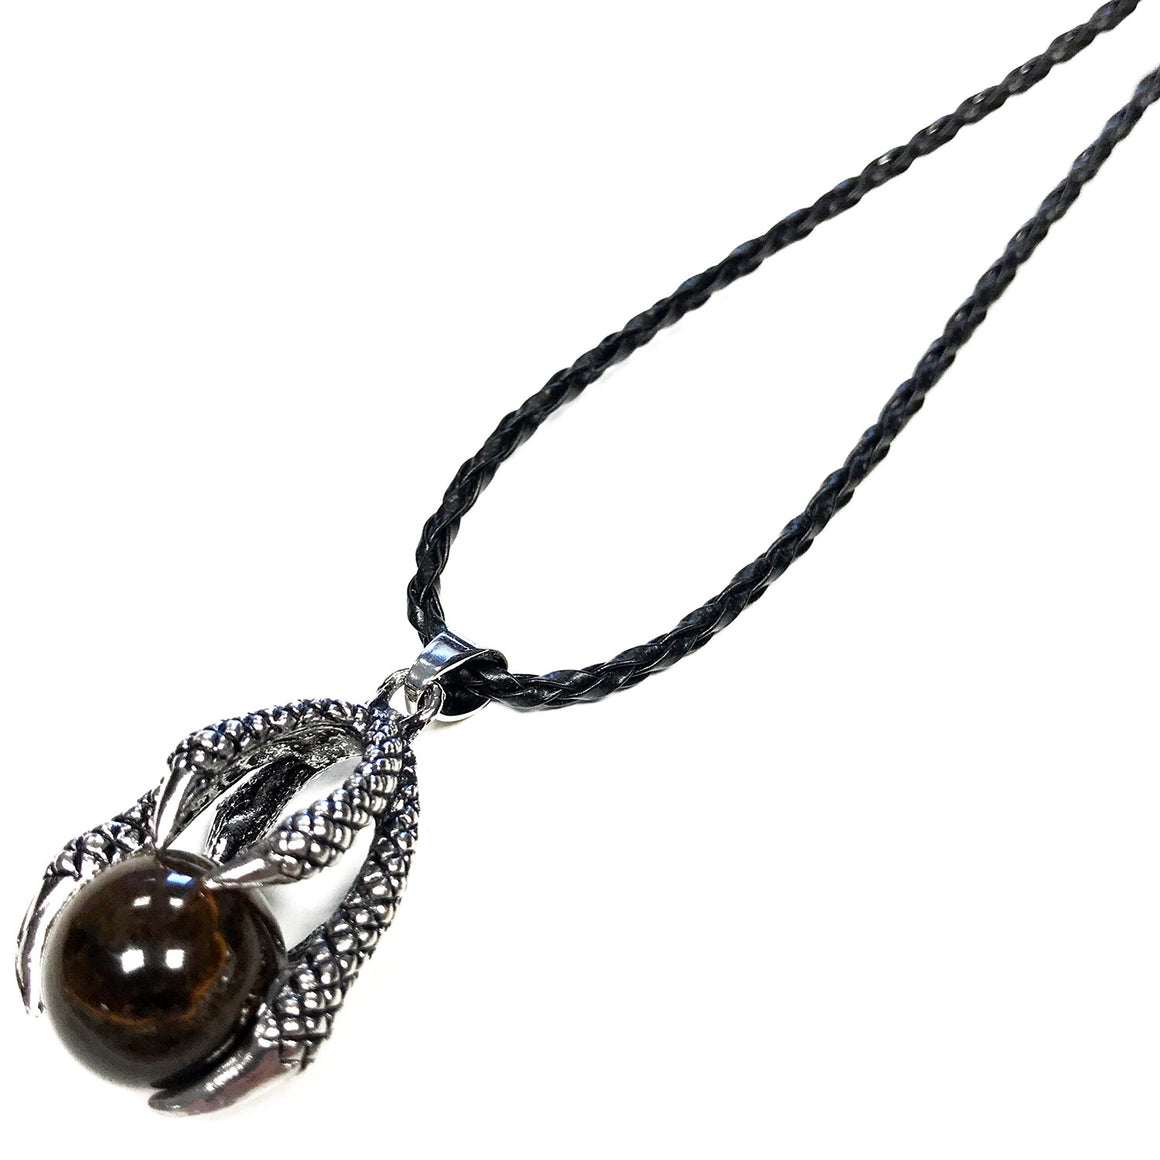 Dragon Claw Orb Pendant Necklace